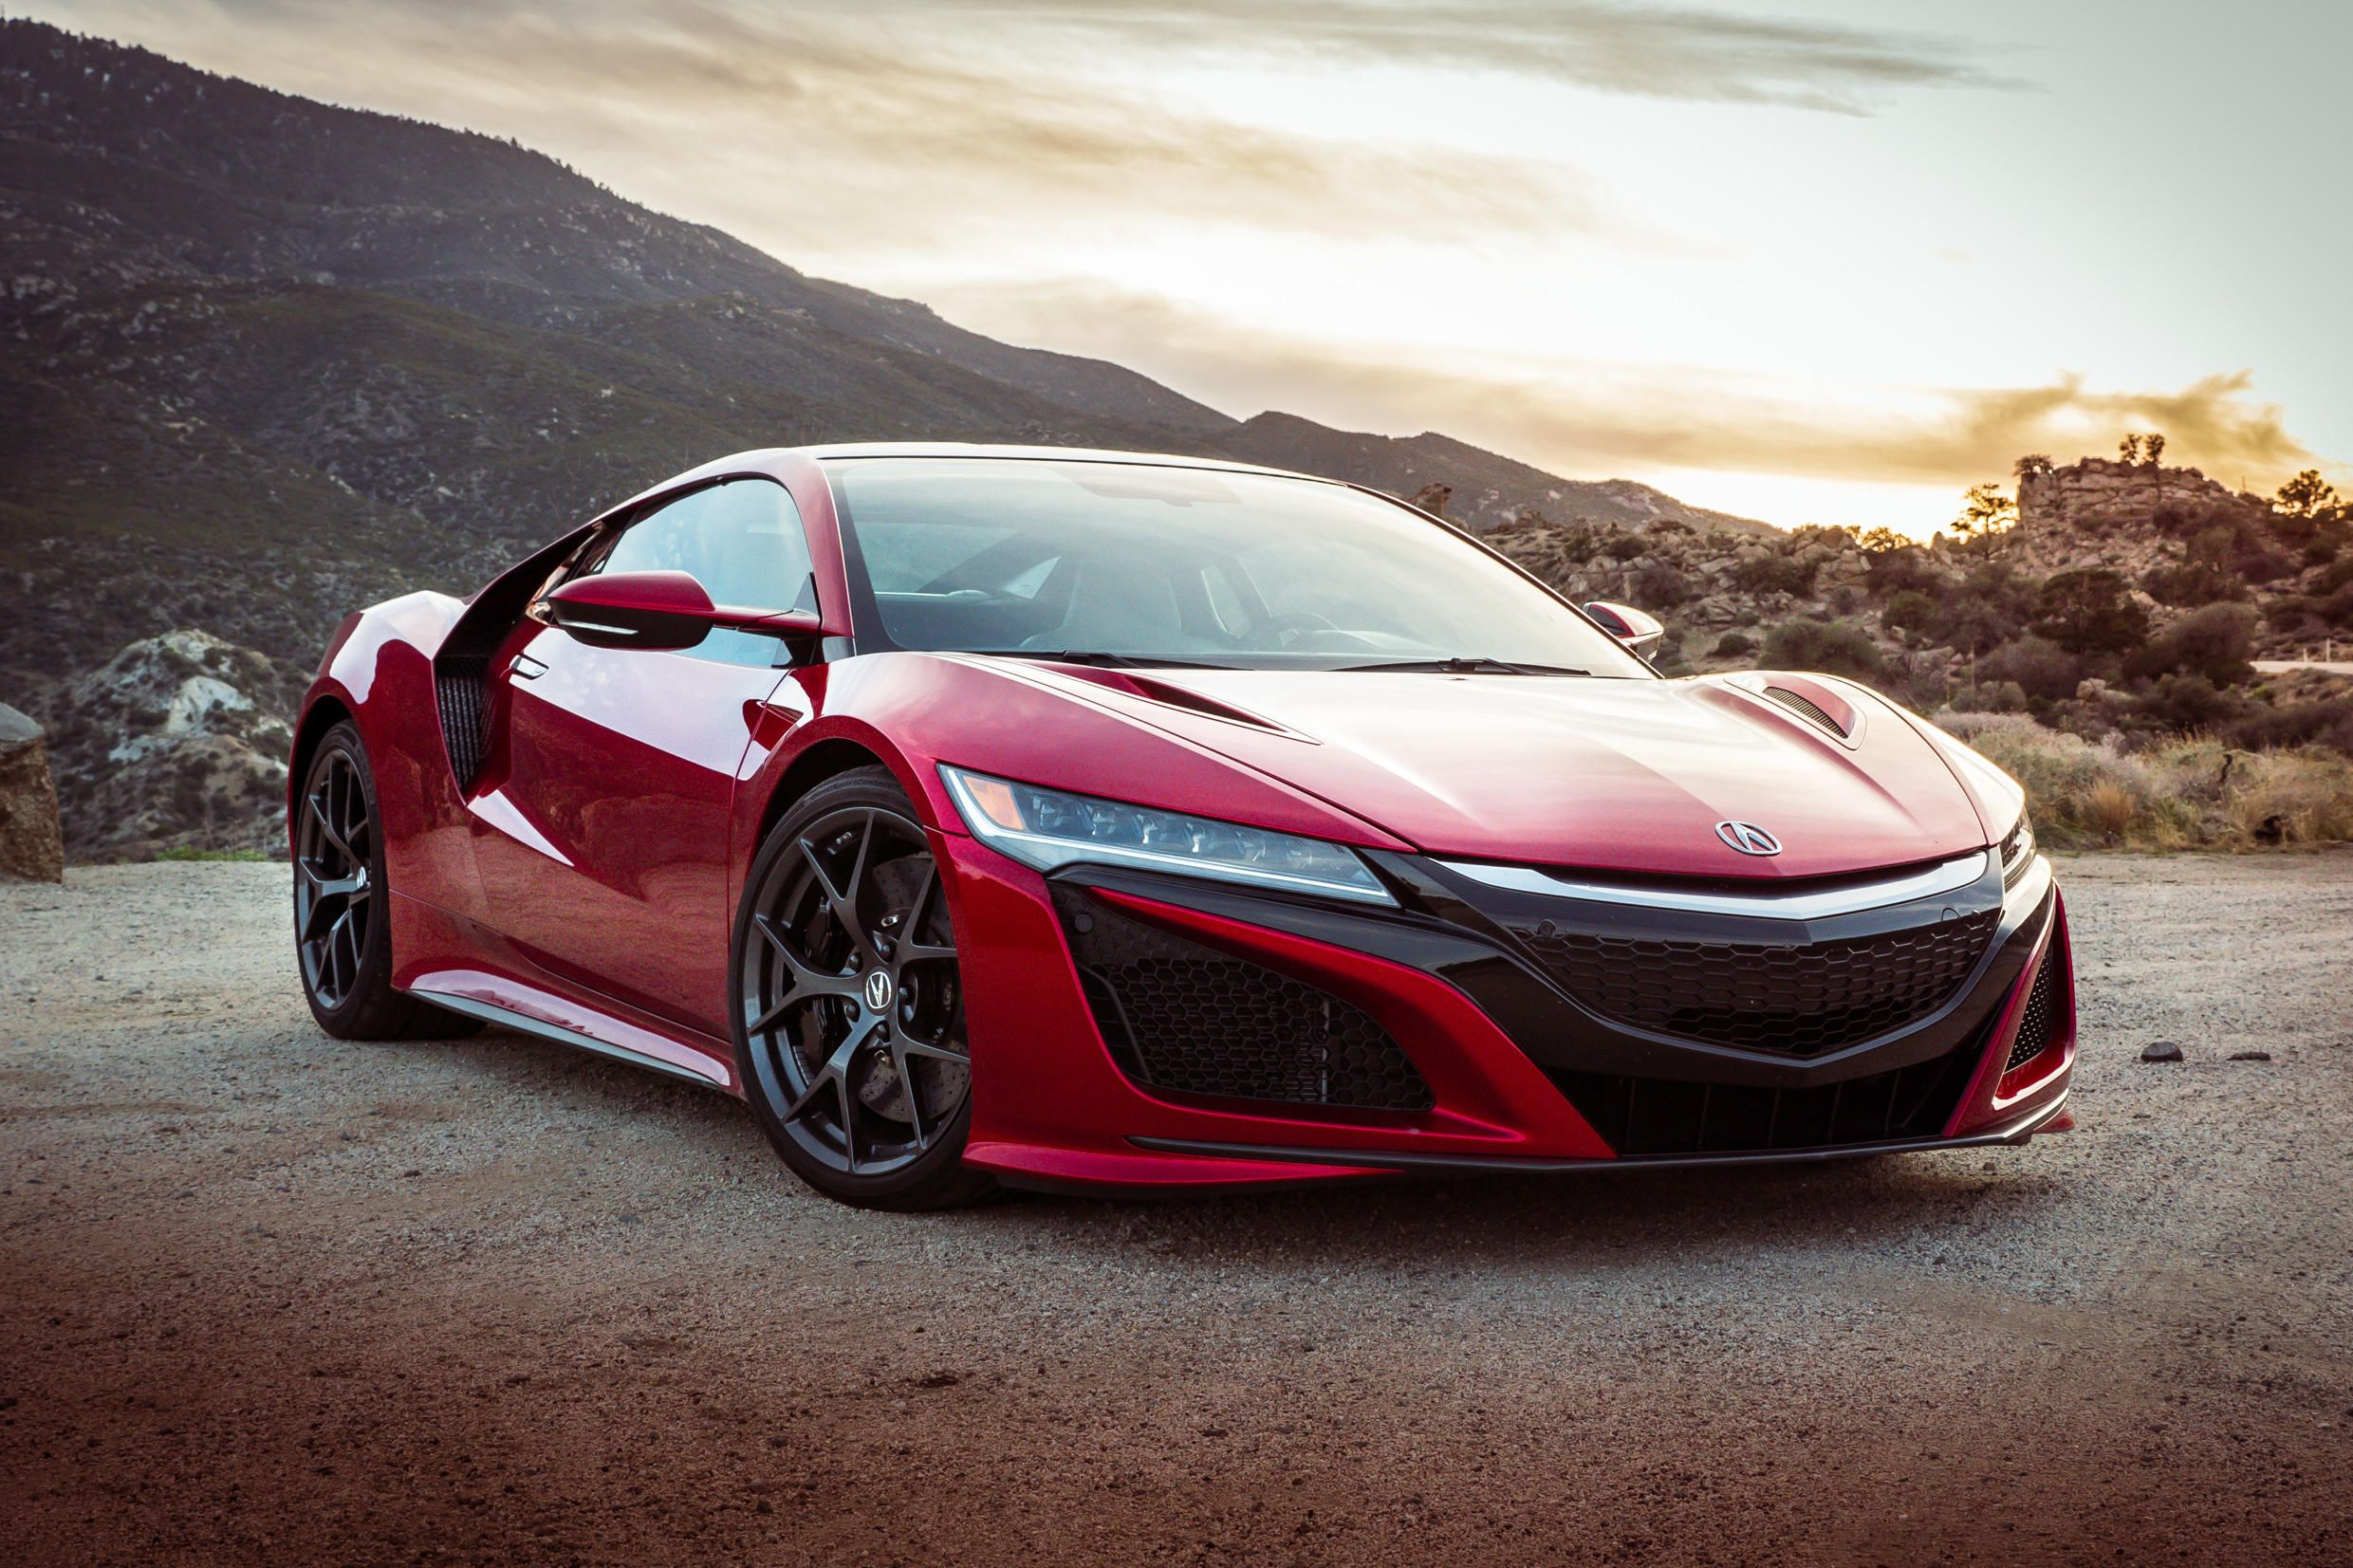 2017 Acura Nsx Hd Cars 4k Wallpapers Images Backgrounds